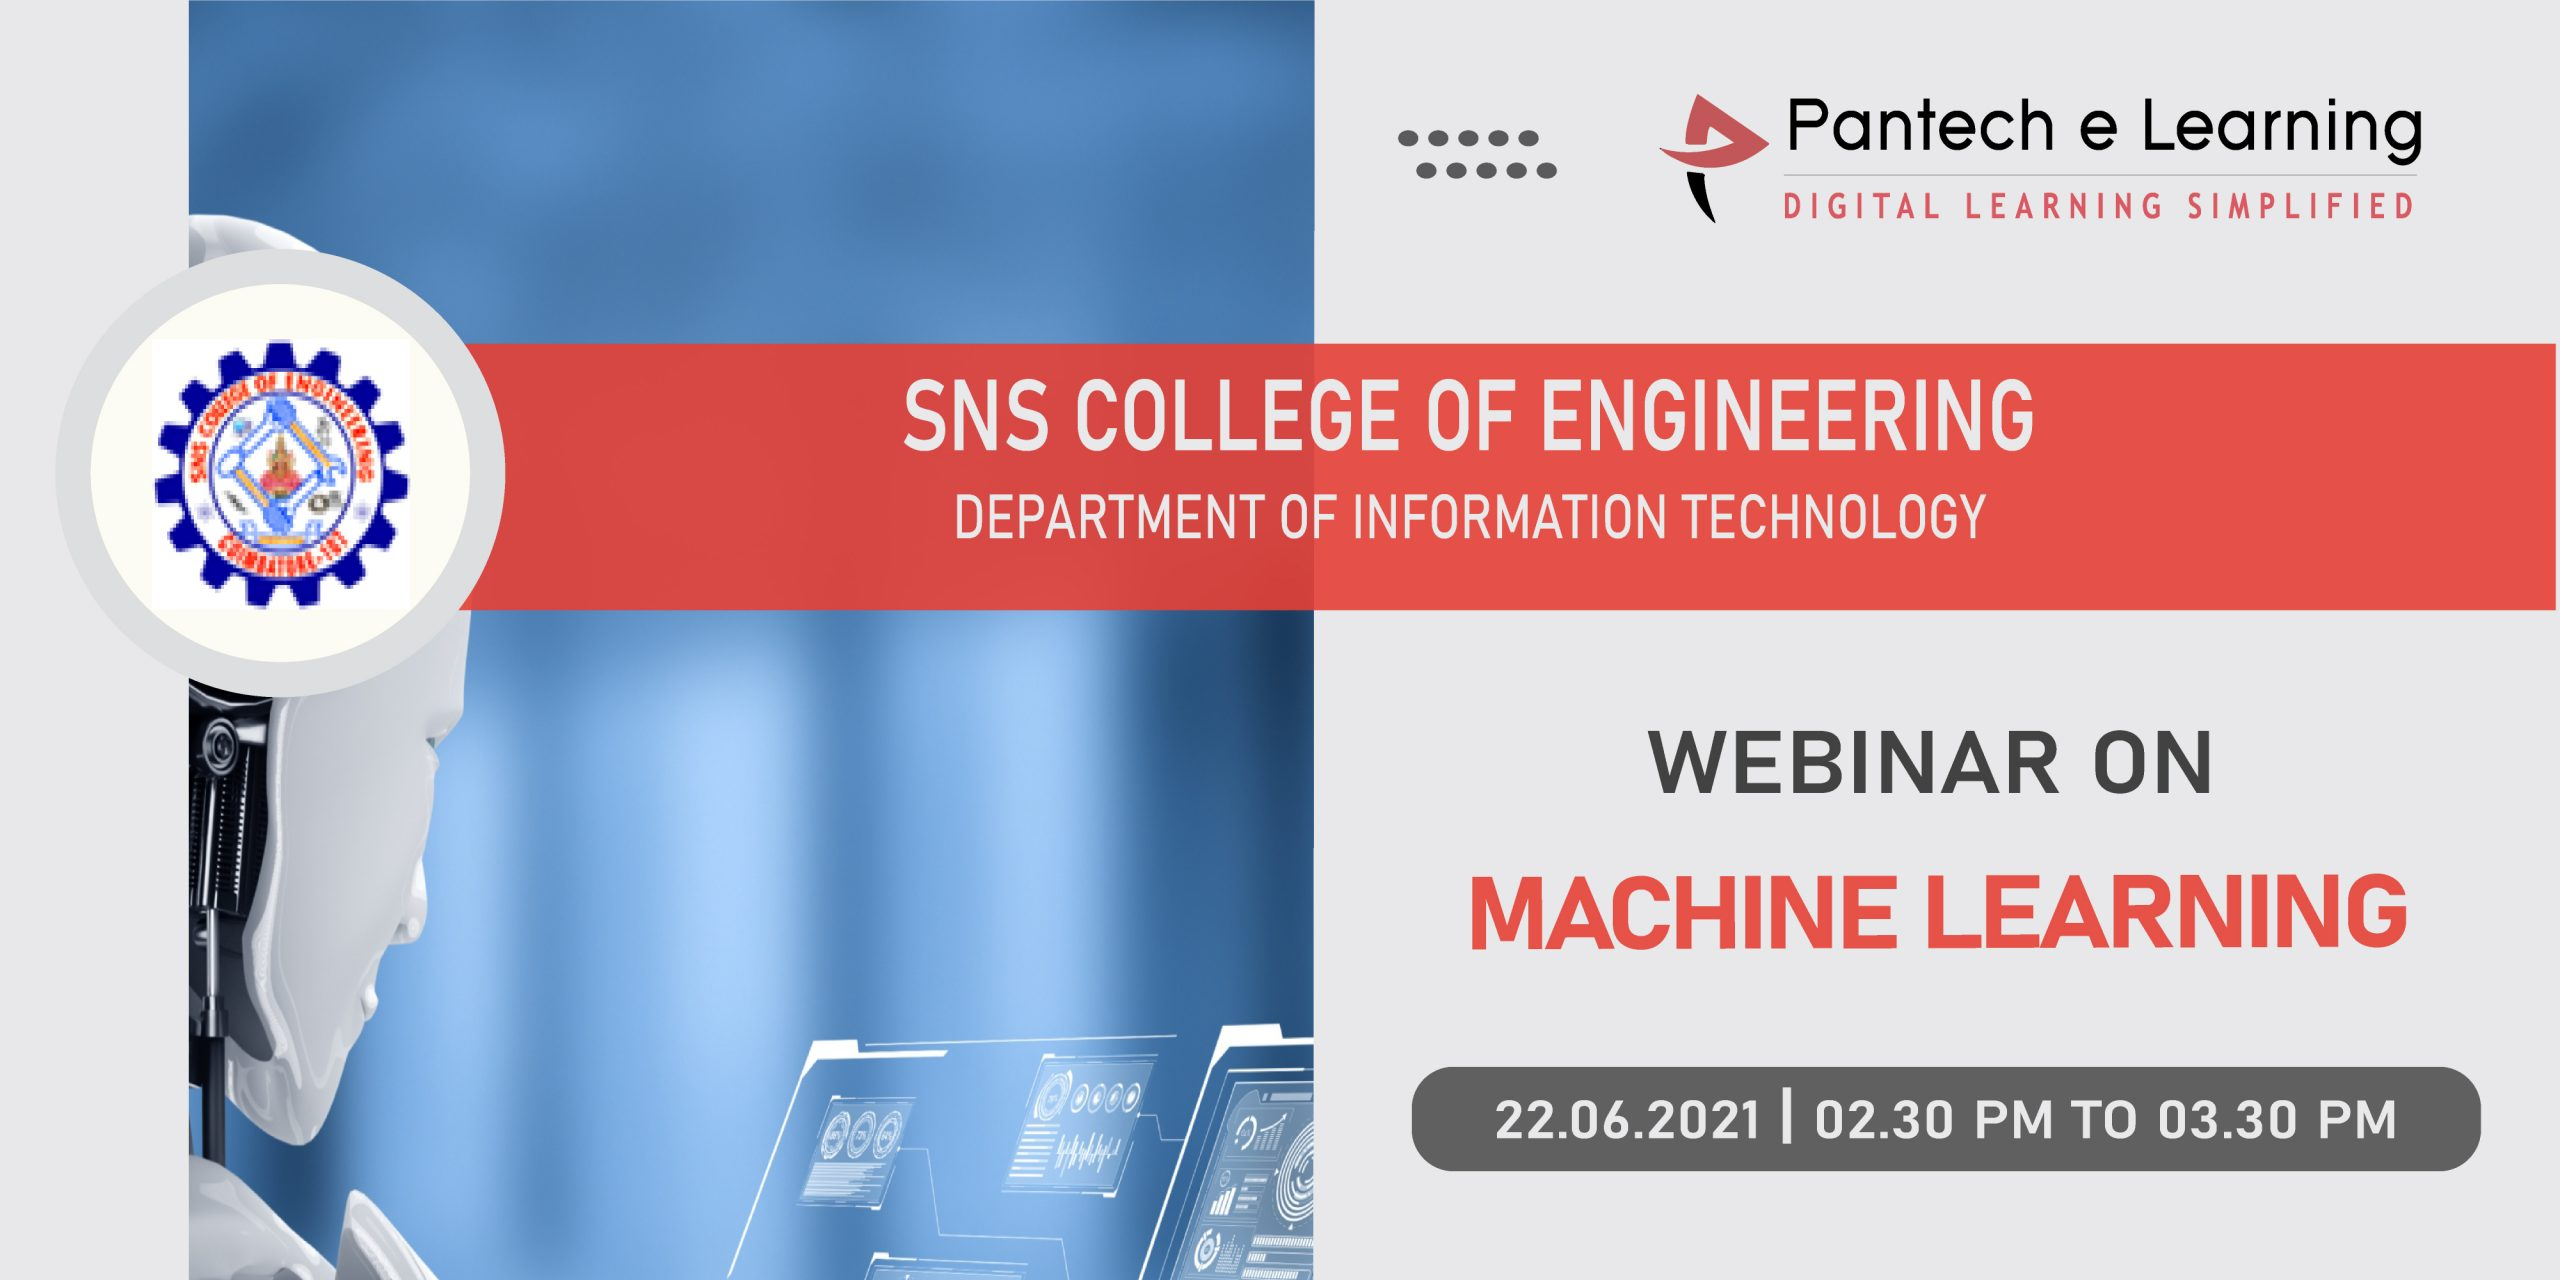 Machine Learning SNS college Pantech eLearning